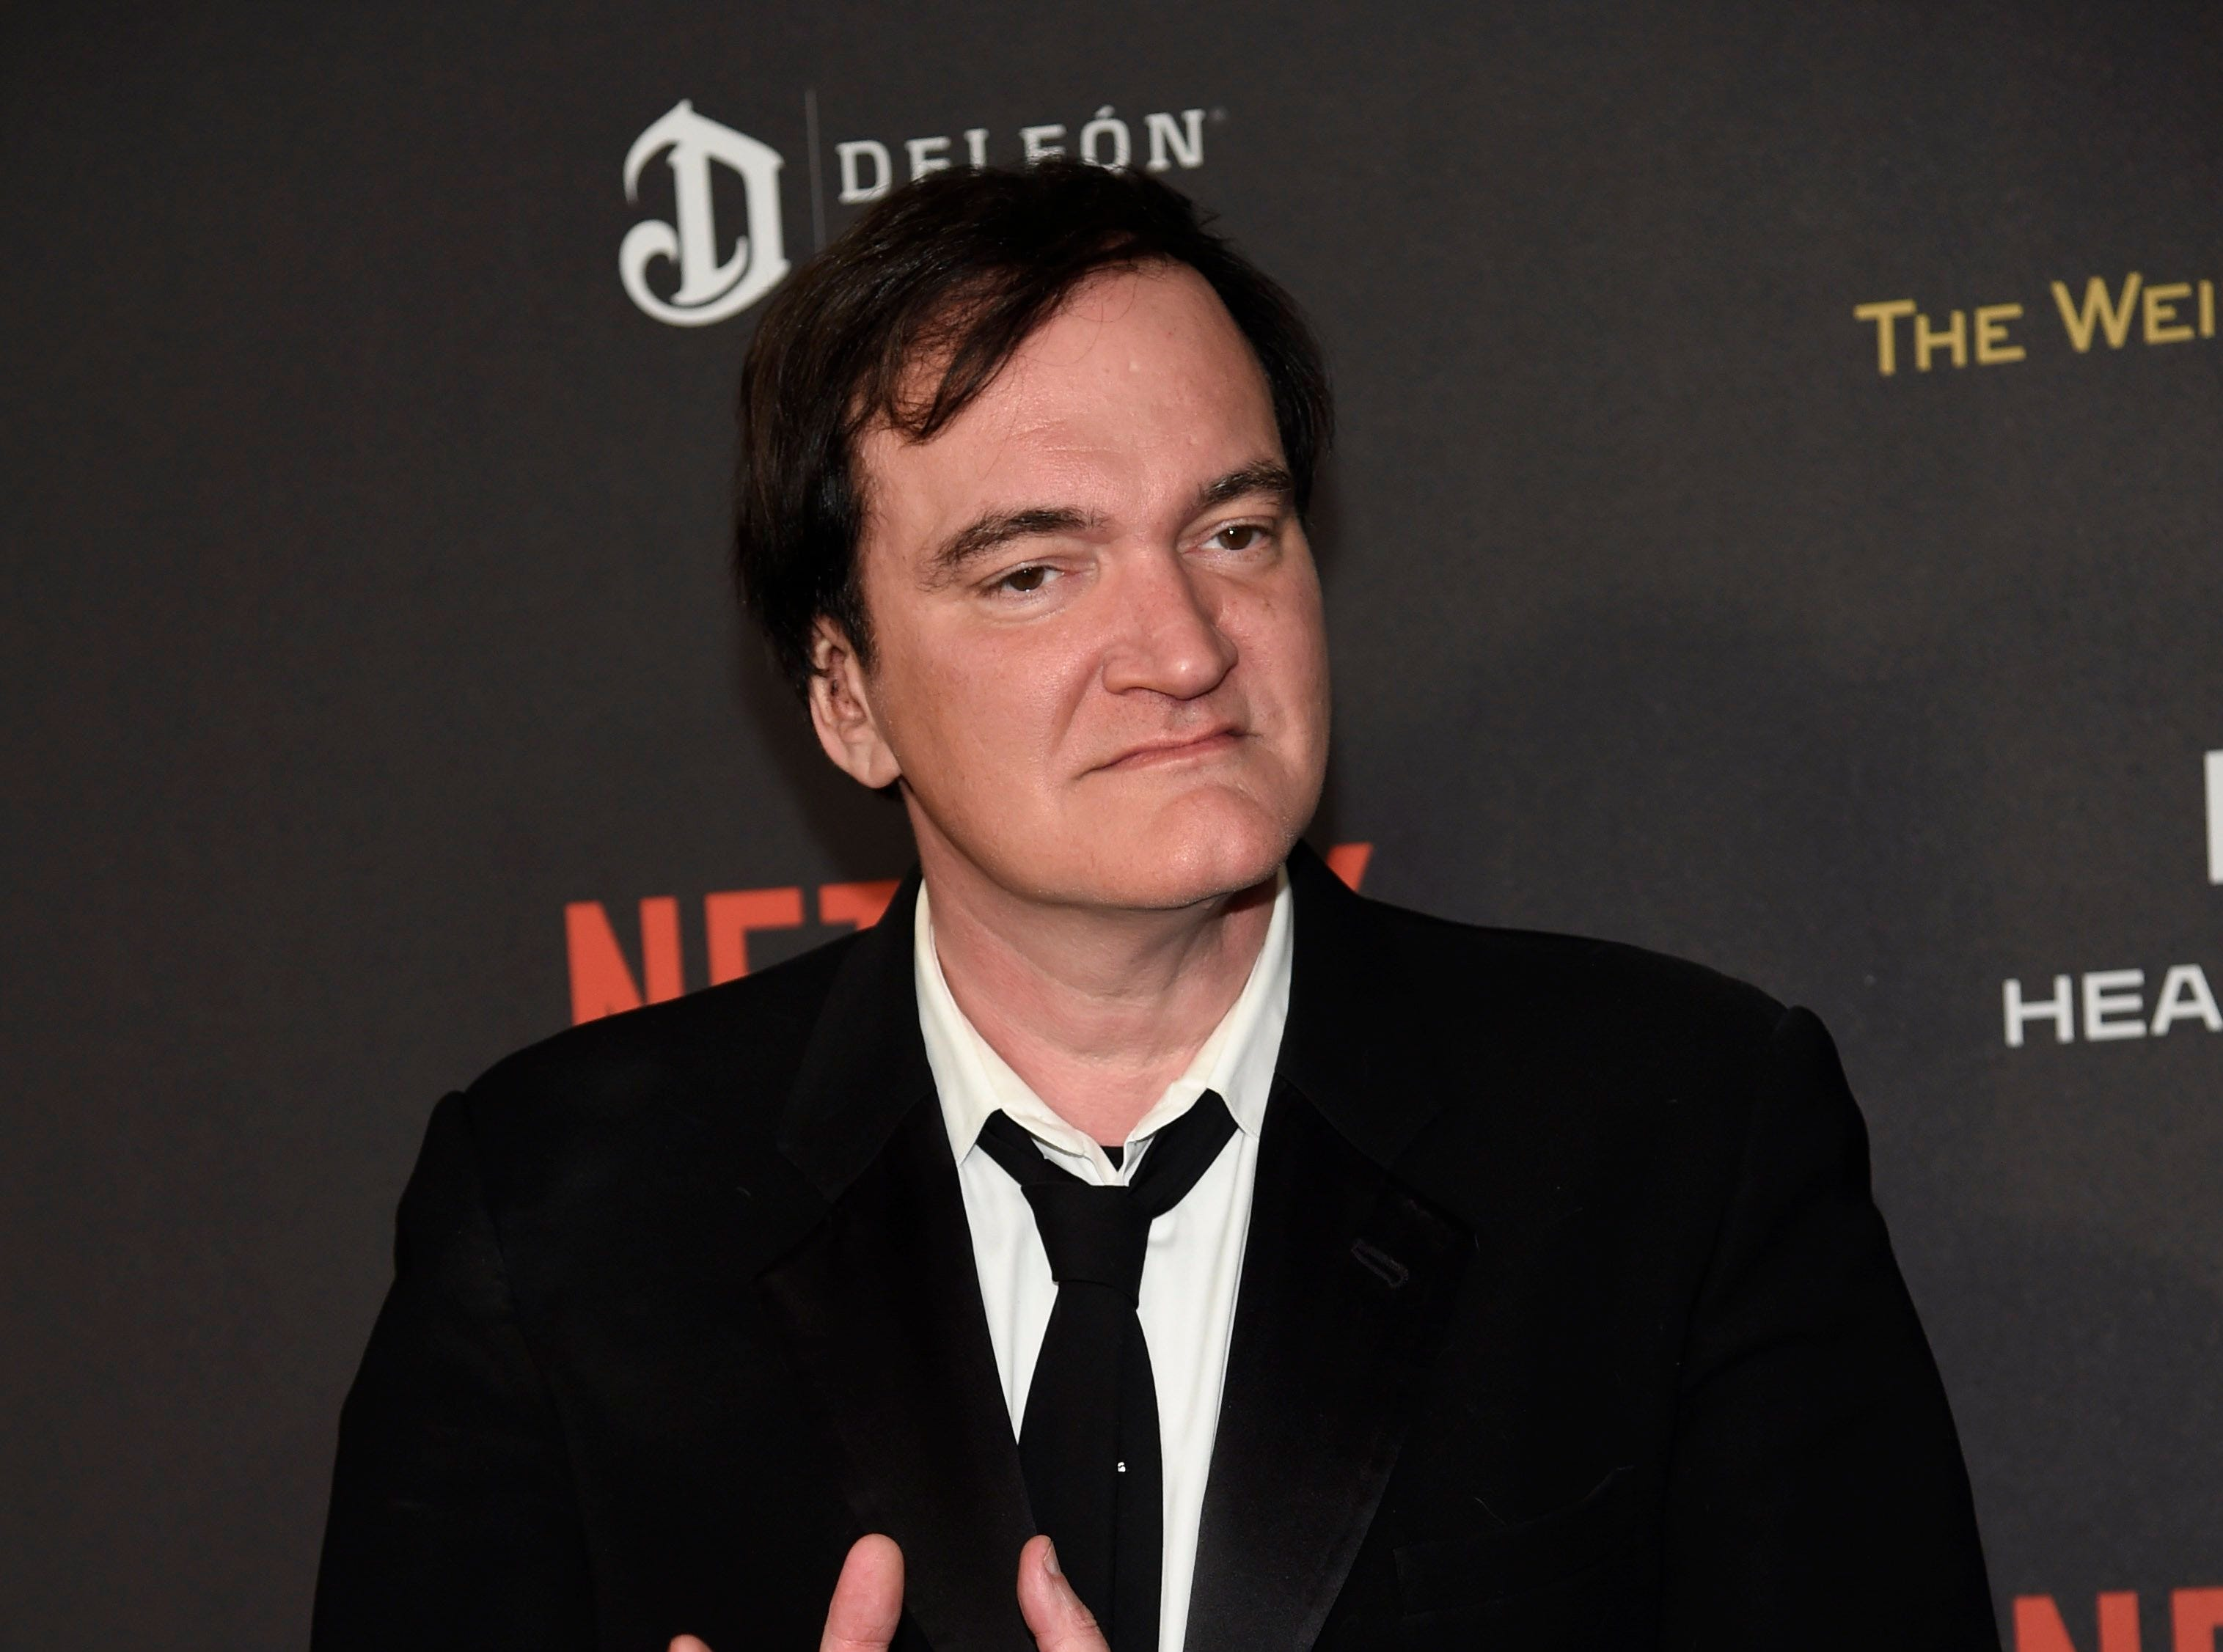 Knoxville-born director Quentin Tarantino arrives at a Golden Globes afterparty on Sunday, Jan. 10, 2016, at the Beverly Hilton Hotel in Beverly Hills, Calif.